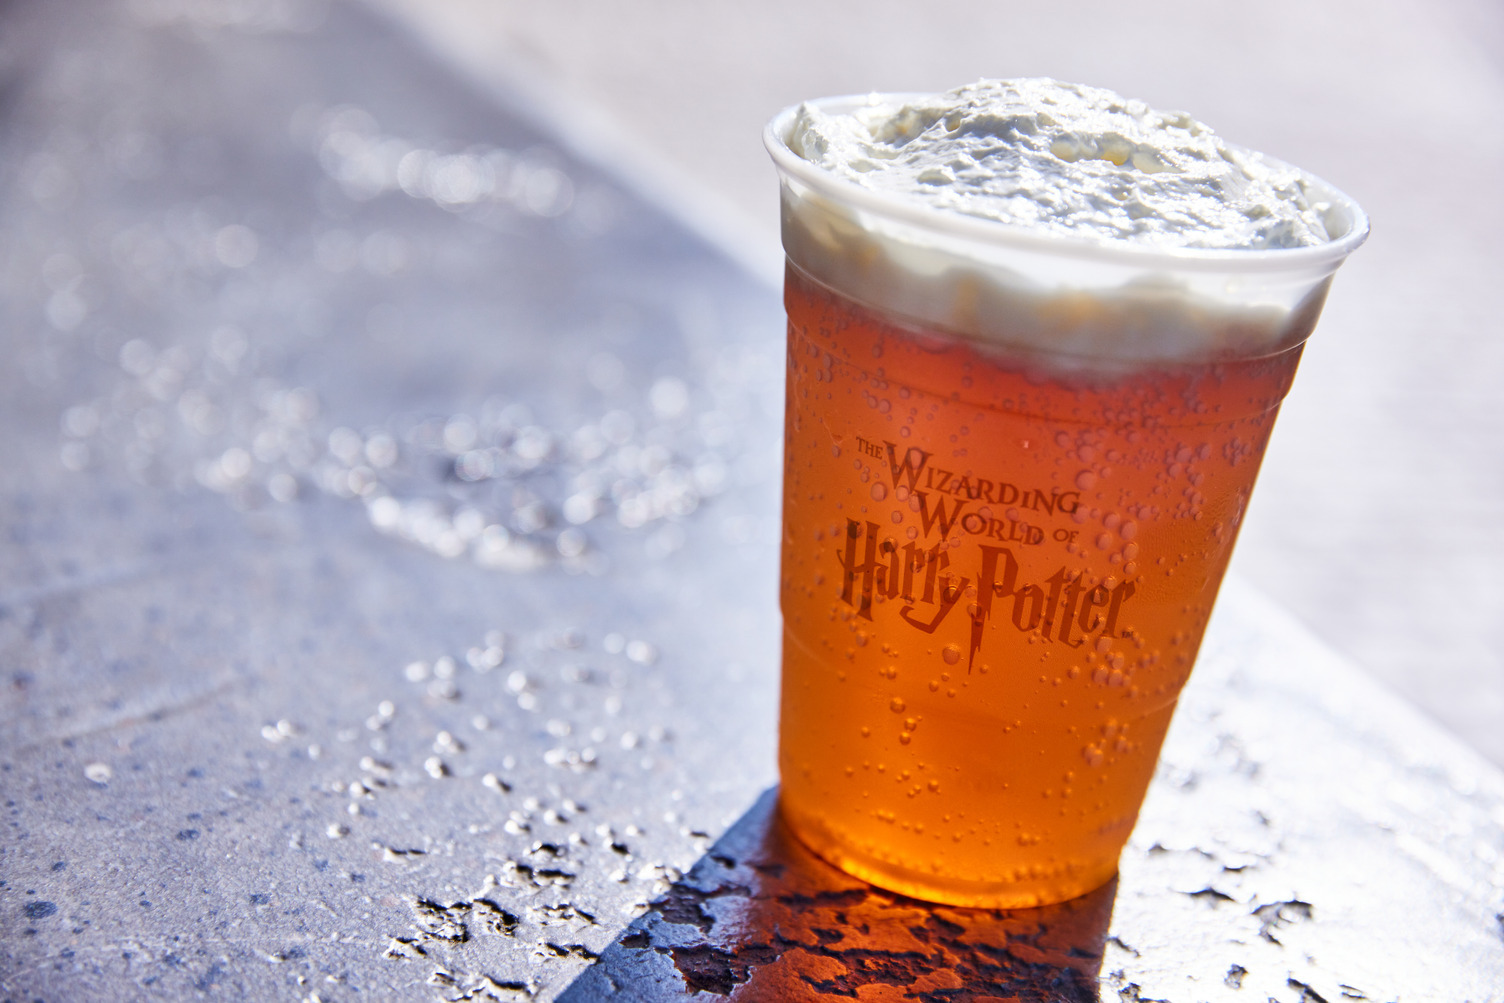 You can pick up Butterbeer for the holidays at Universal's new Harry Potter walk-up sweets shop